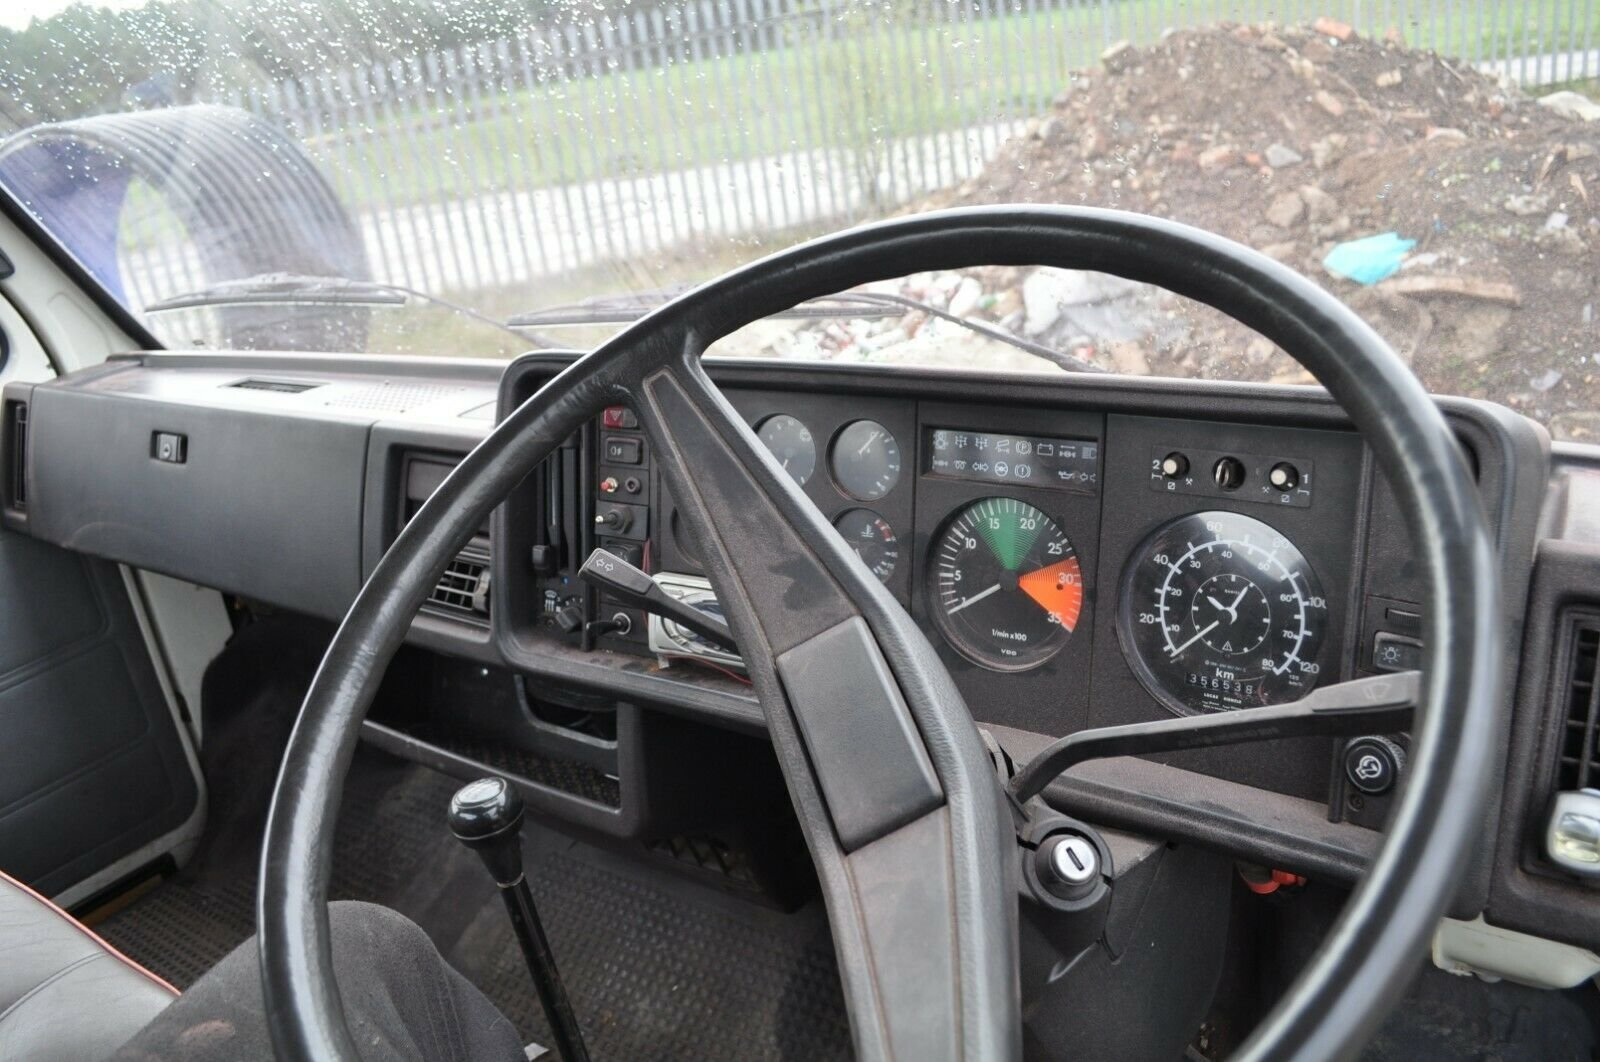 1988 MAN VW TRUCK 6.9L 7.5 TON IN RUNNING ORDER For Sale (picture 5 of 6)